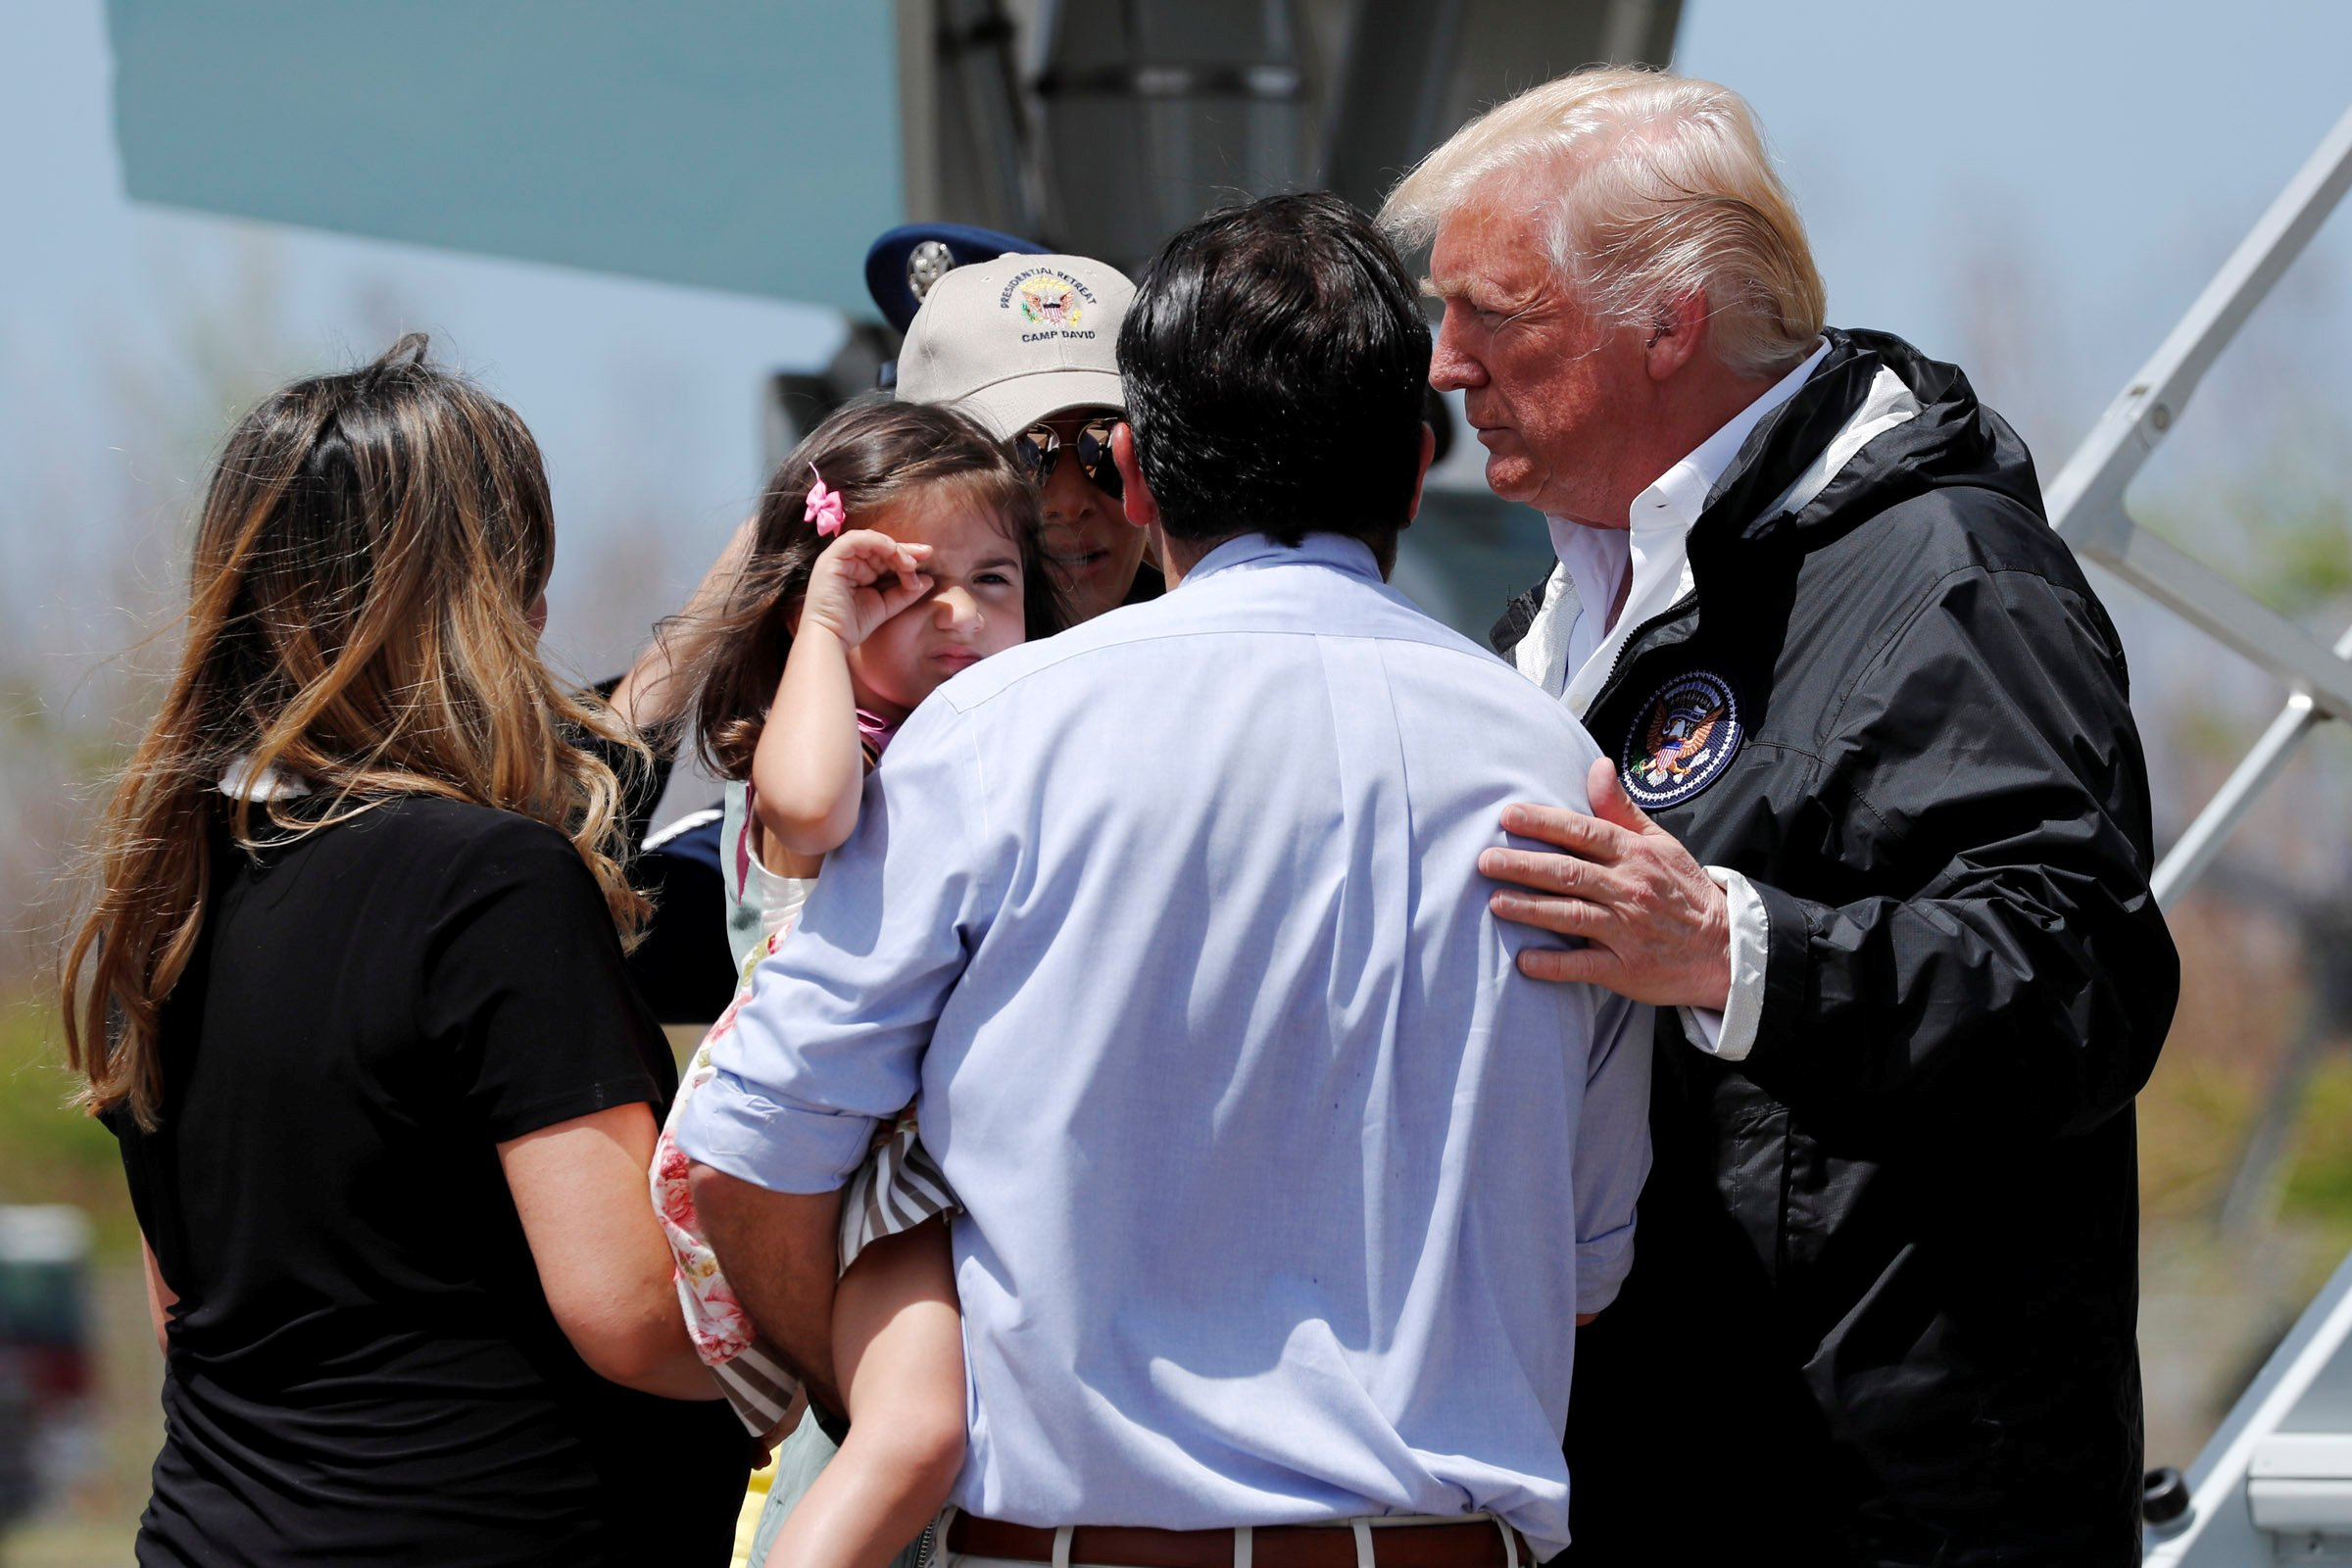 Trump visits Puerto Rico to survey damage from Hurricane Maria and relief efforts